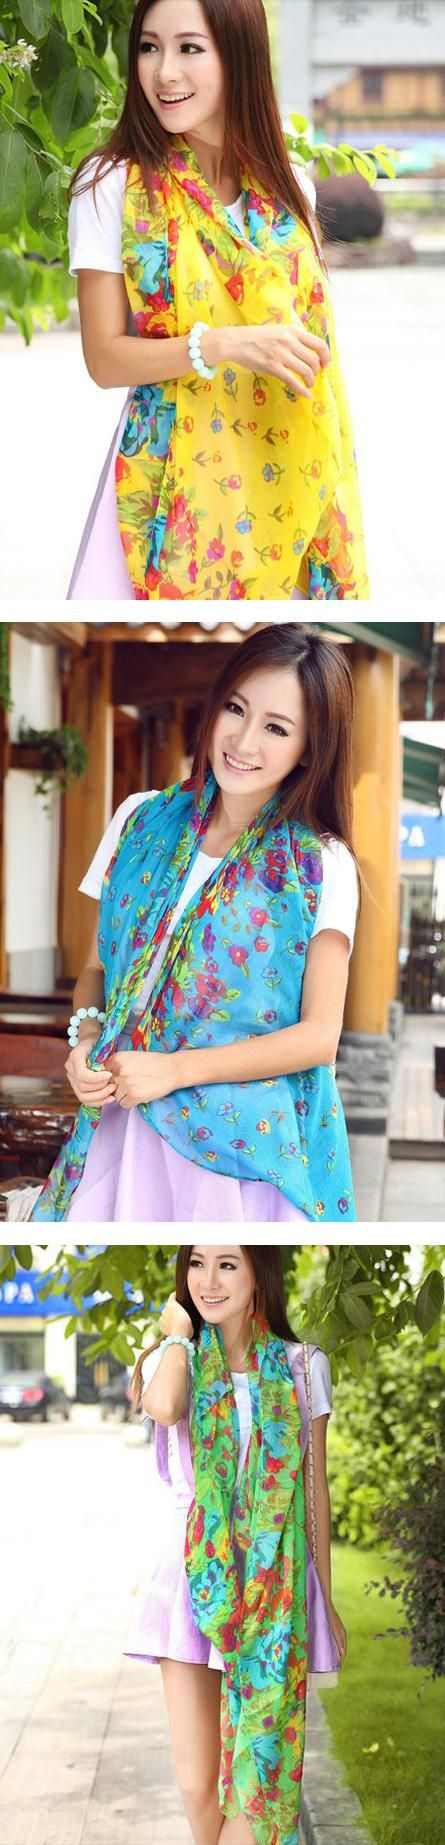 Floral Long Scarf Shawl 7 colour available FREE shipping worldwide only 7.99 usd